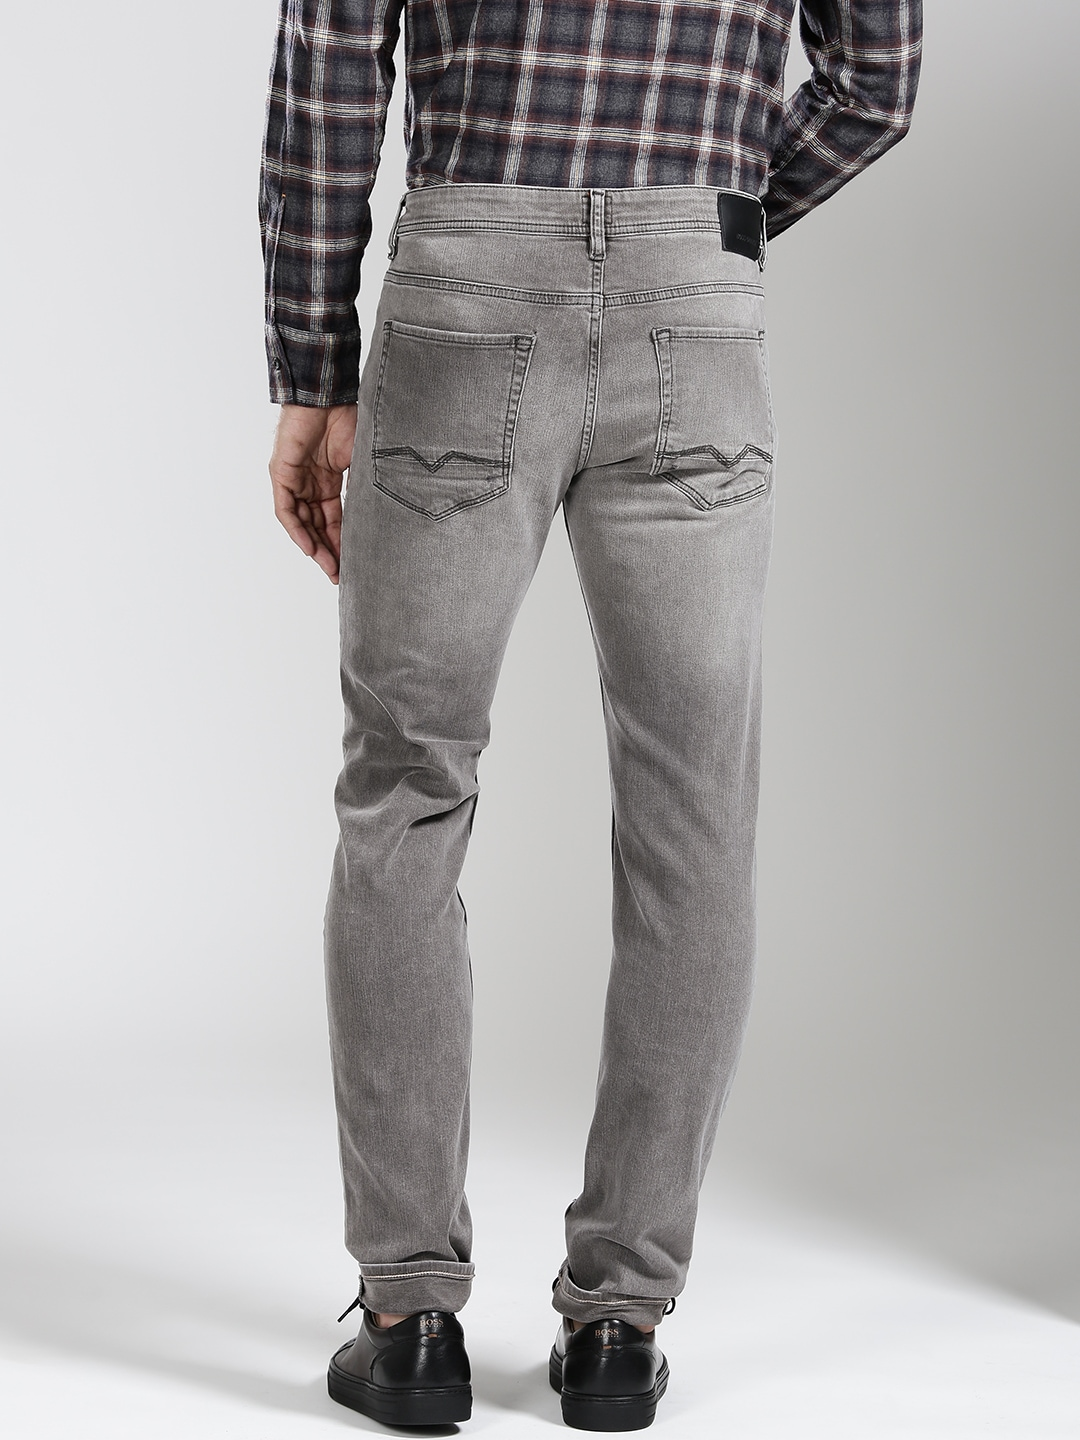 Grey Jeans - Buy Grey Jeans Online in India